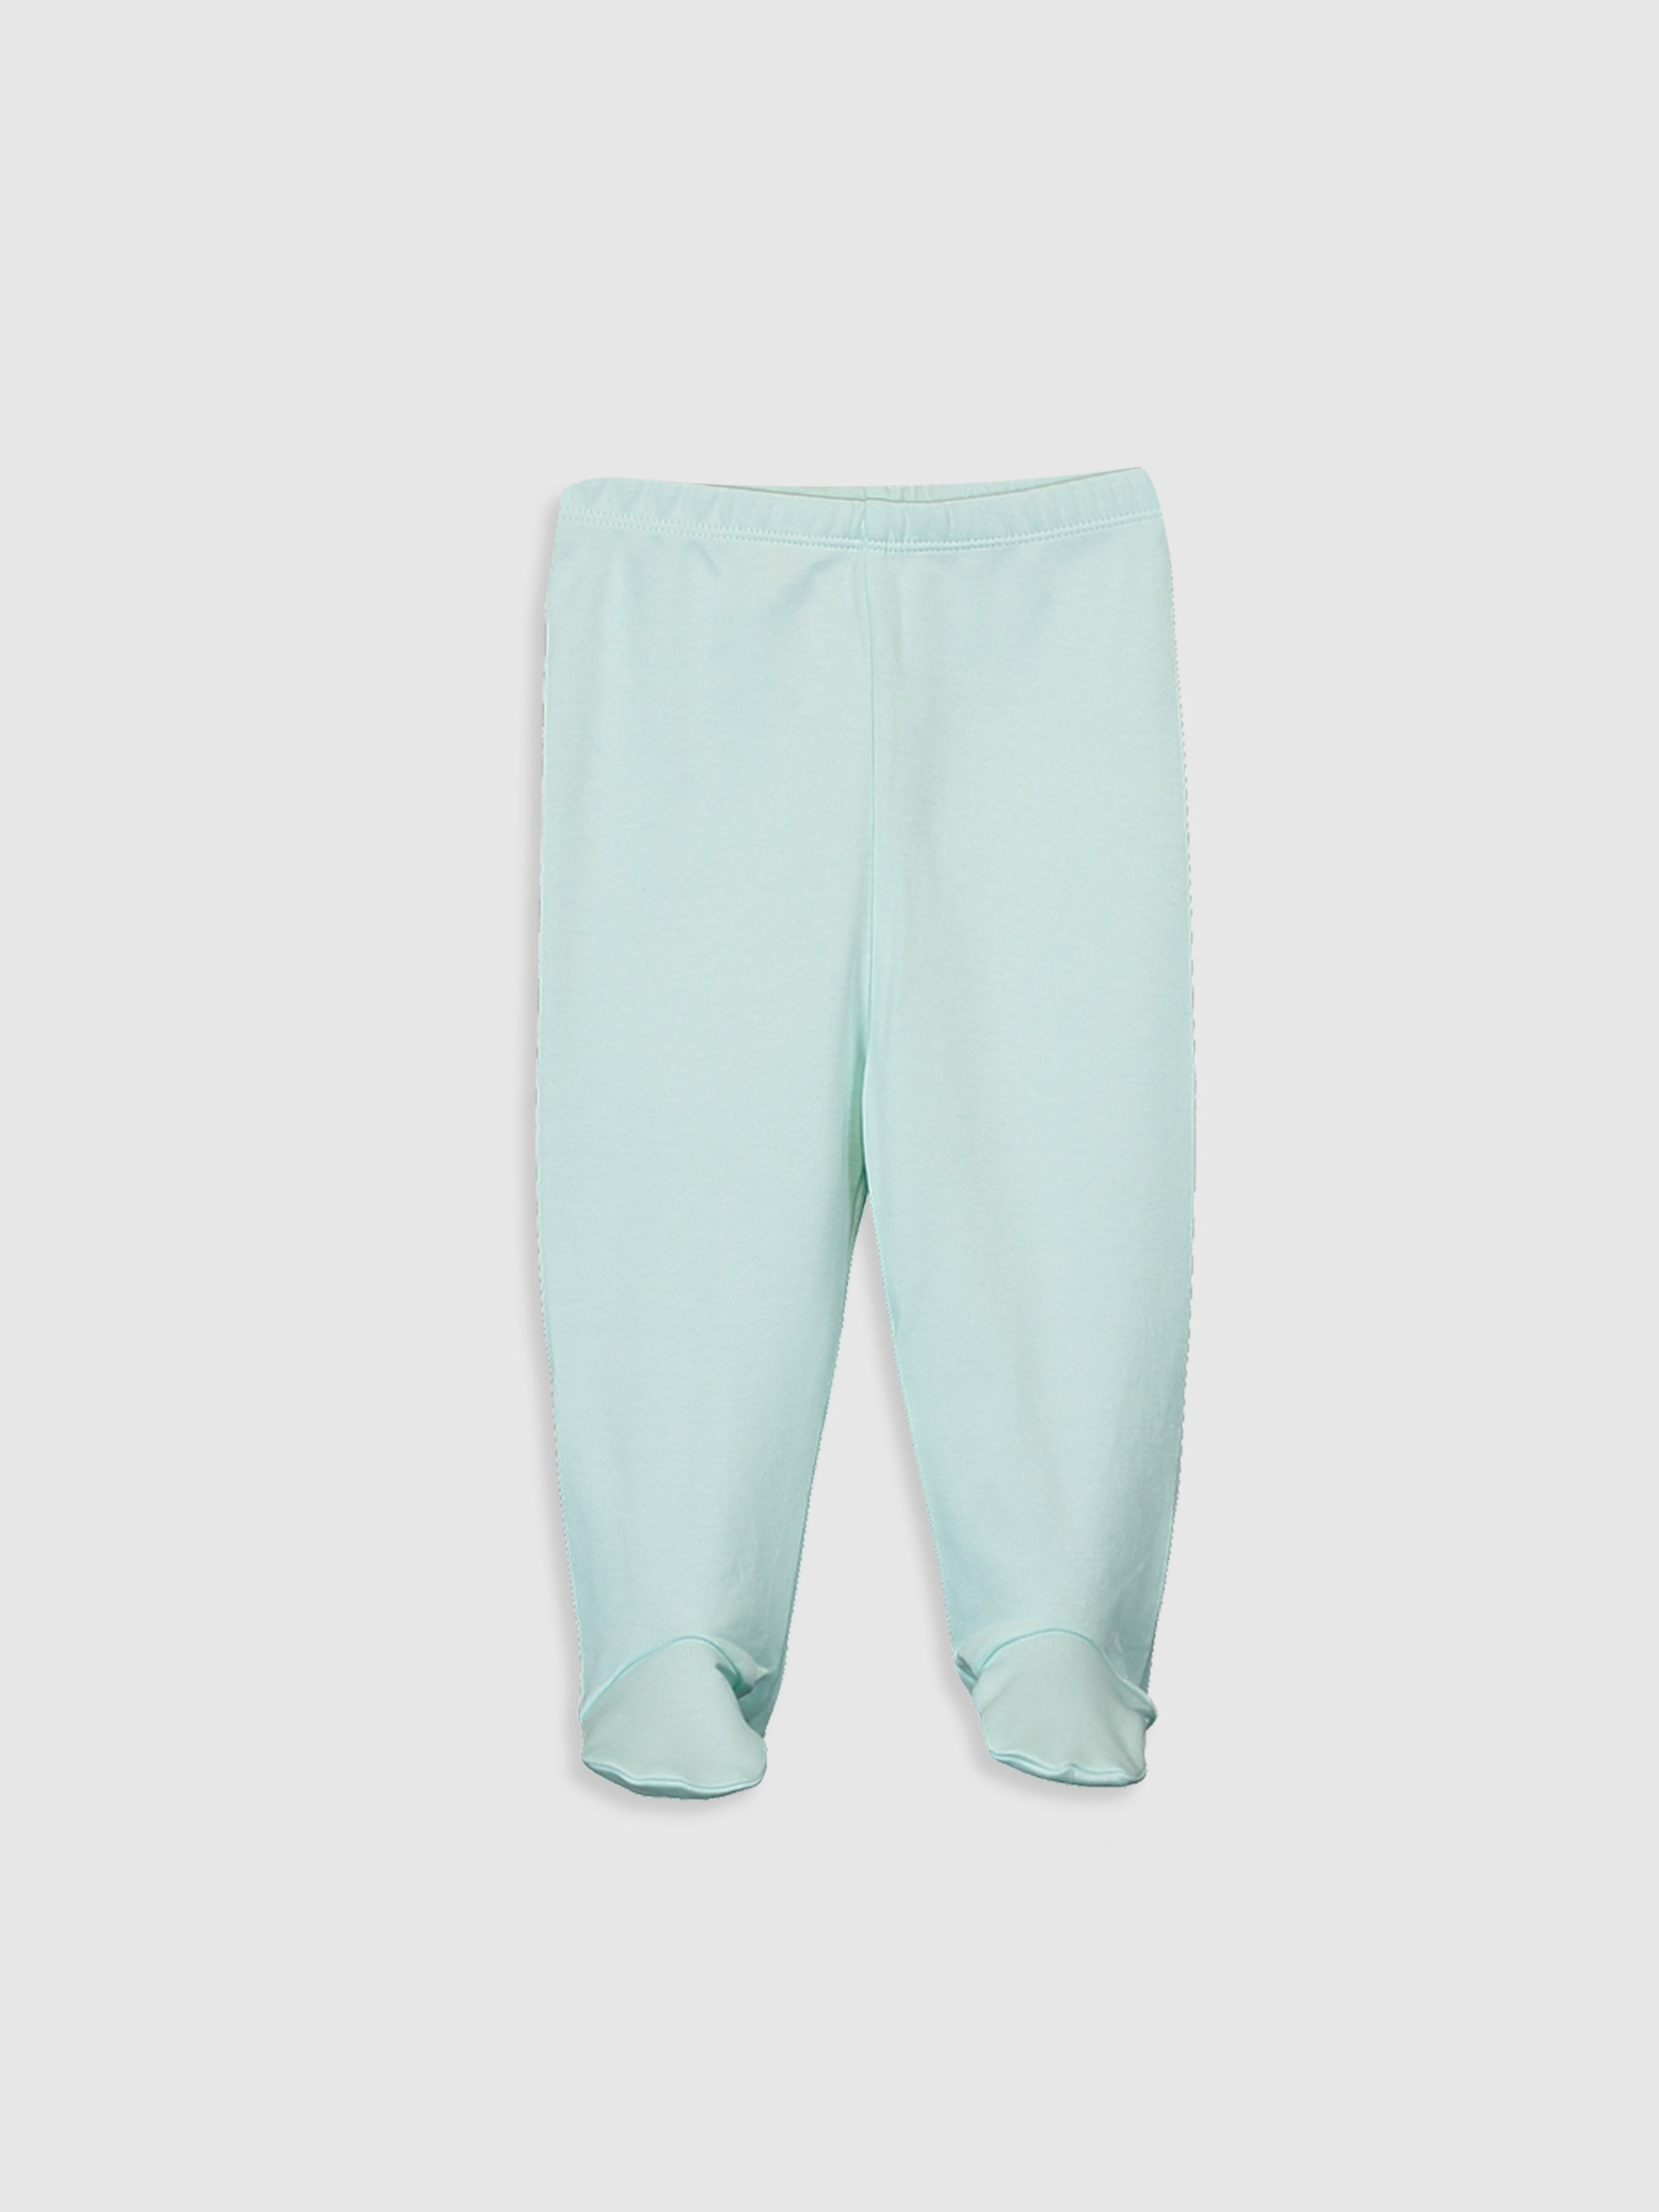 GREEN - Baby Boy's Trousers - 0SE975Z1